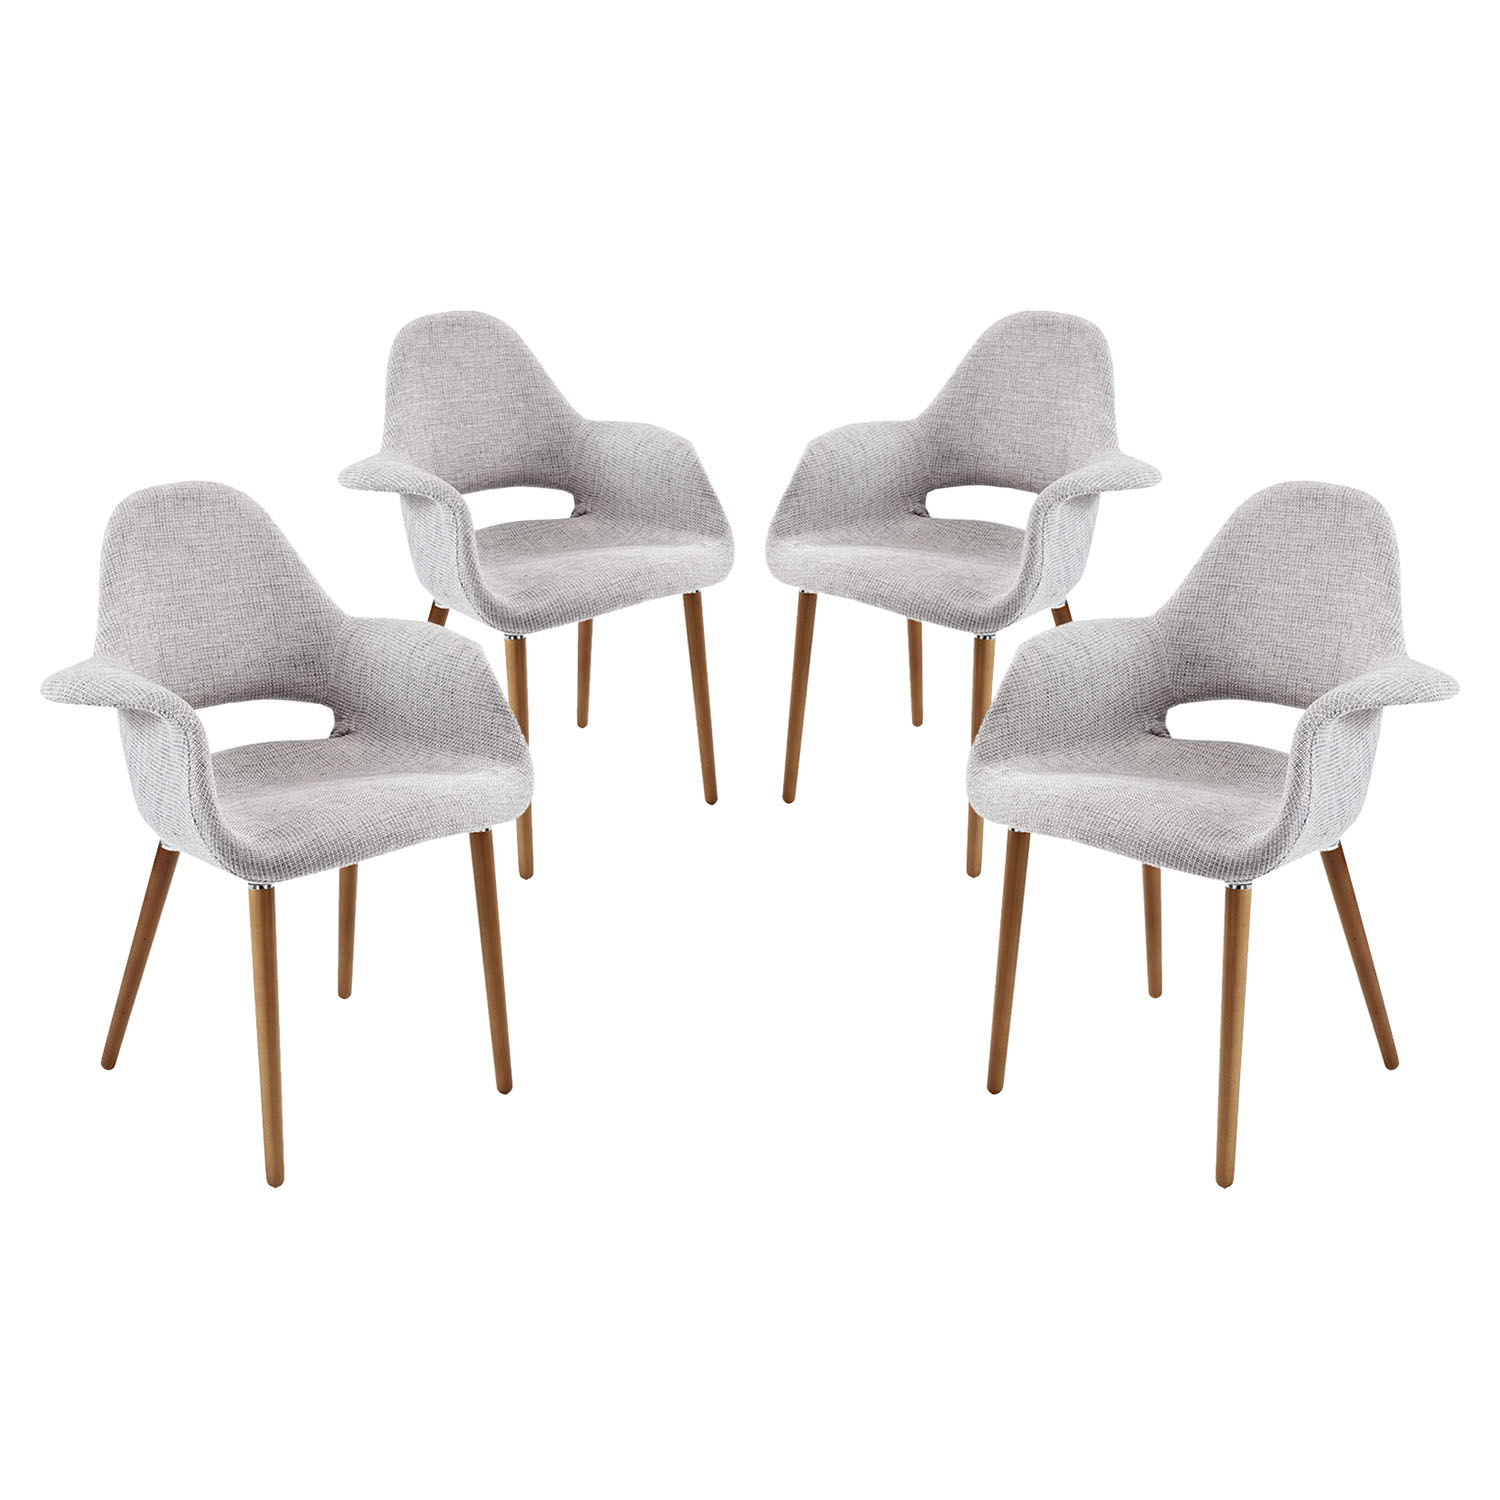 Aegis Dining Armchair - Wood Legs, Light Gray (Set of 4) - EEI-1330-LGR